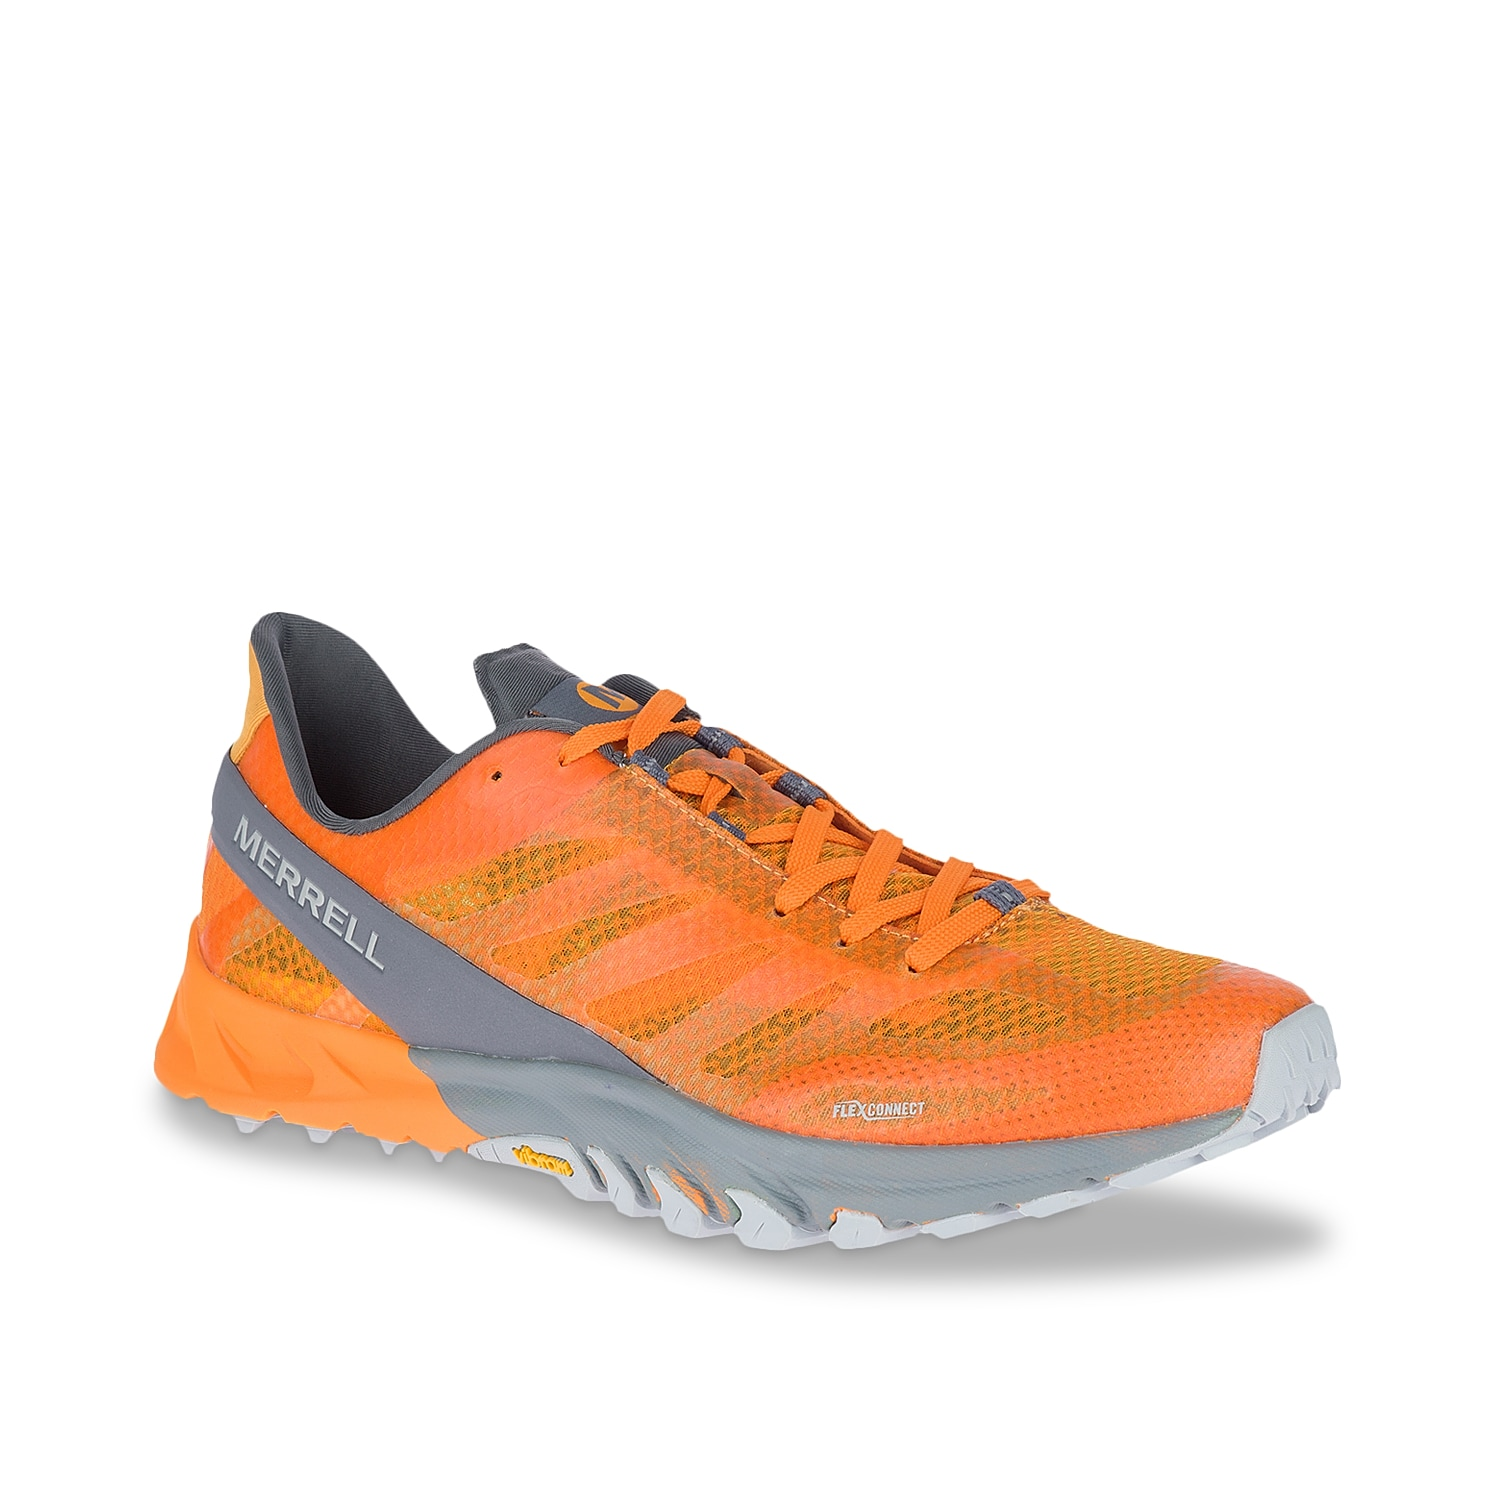 Take your long runs to demanding terrains with the MTL Cirrus trail running shoe from Merrell. Boasting an eye-catching upper, this lace-up sneaker offers phenomenal flexibility and grip.